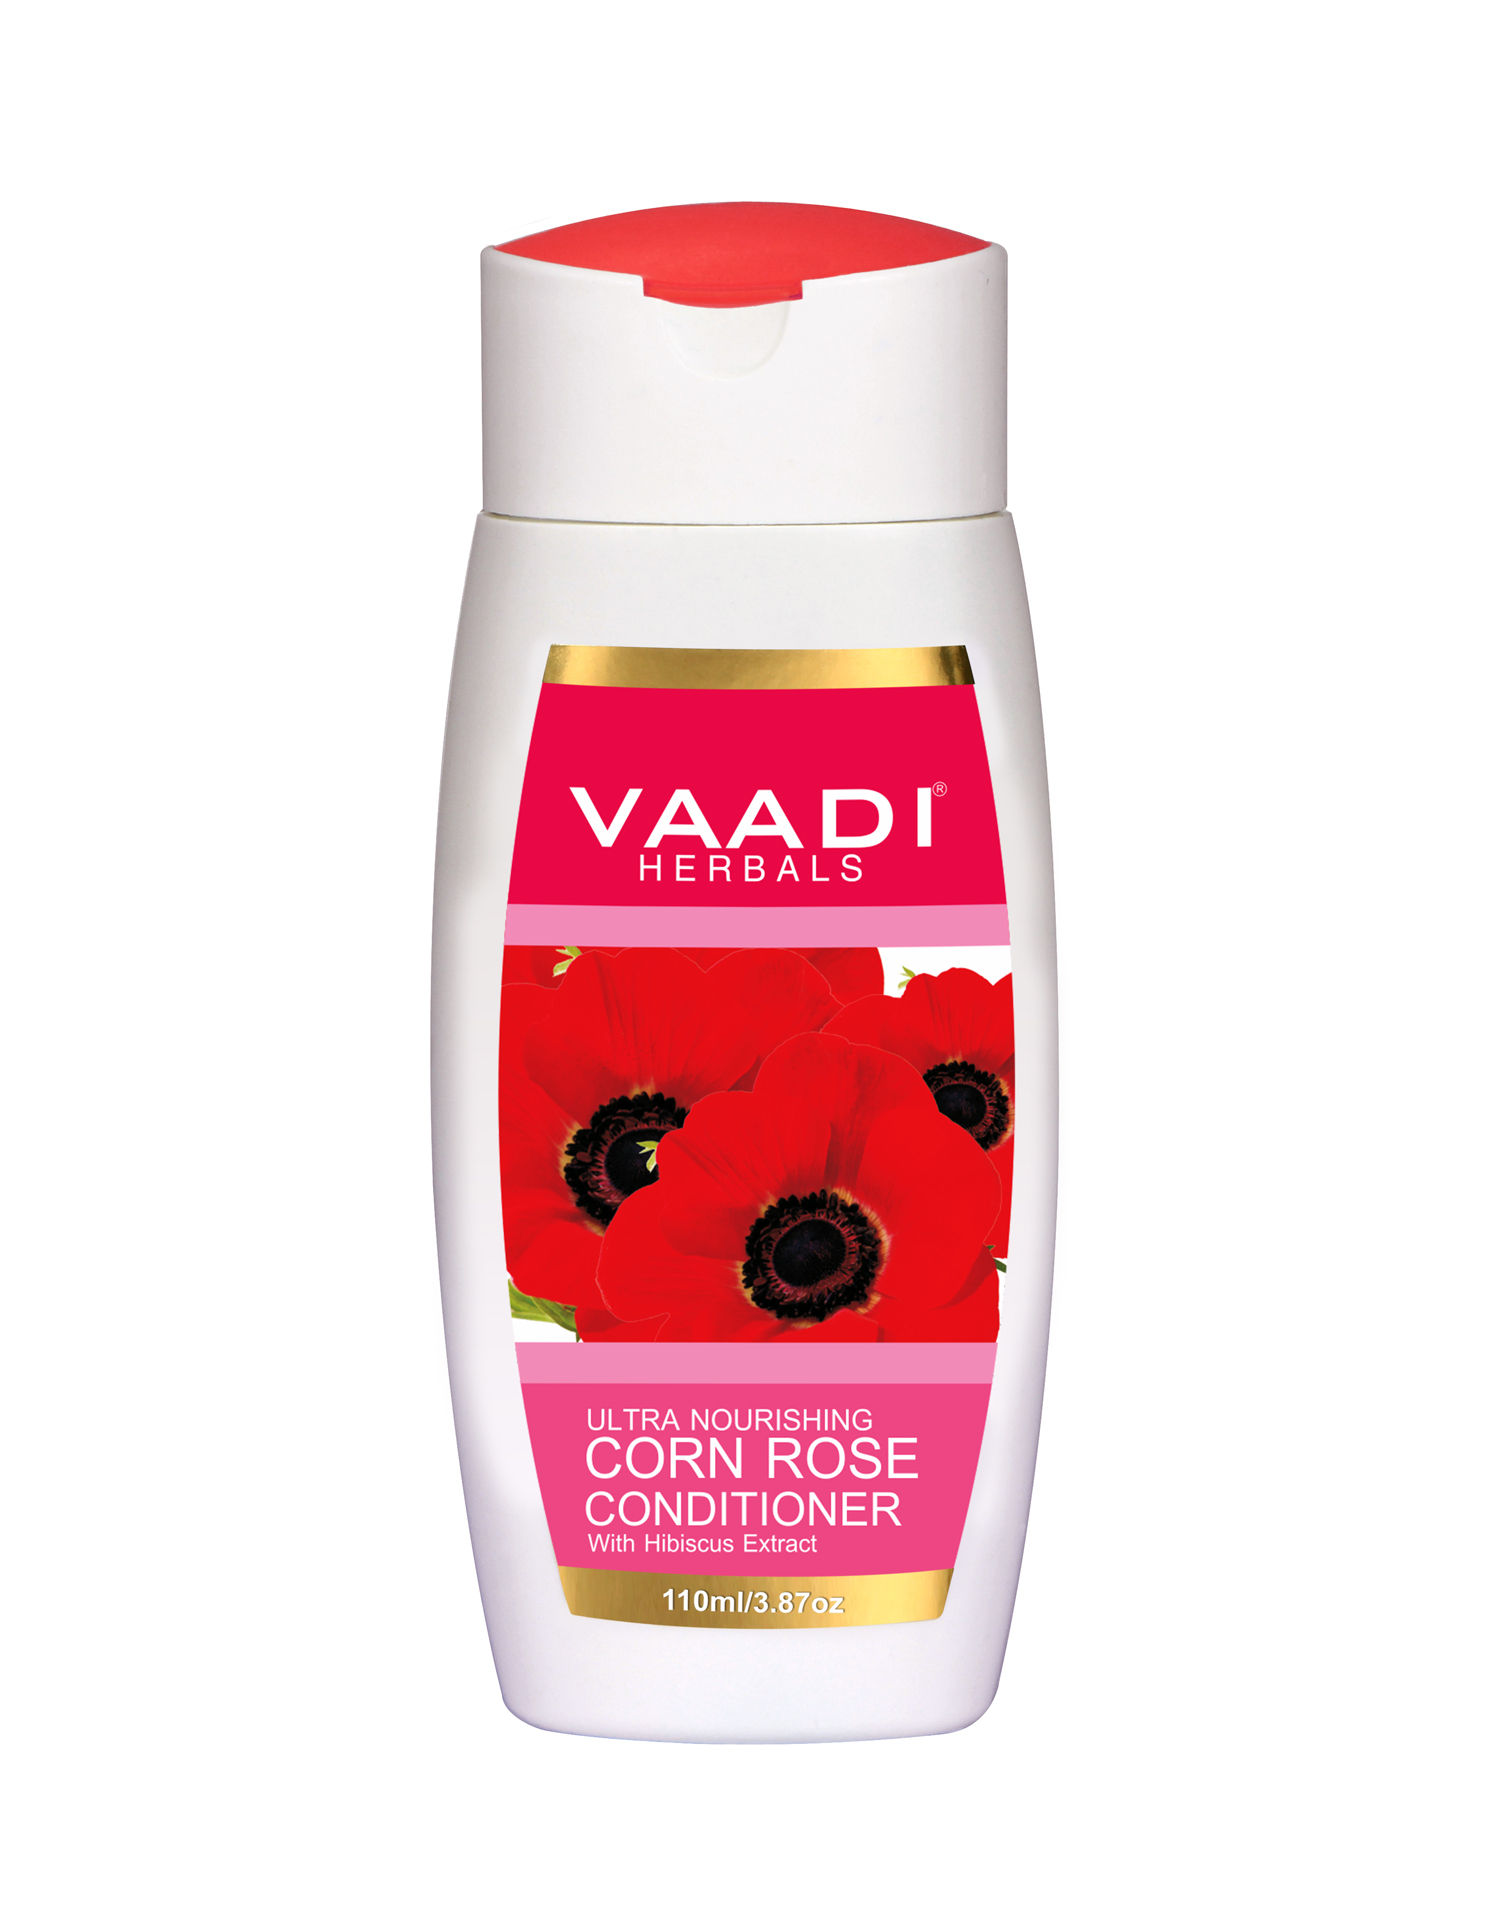 Vaadi Herbals With Hibiscus Extract Corn Rose Conditioner 110ml